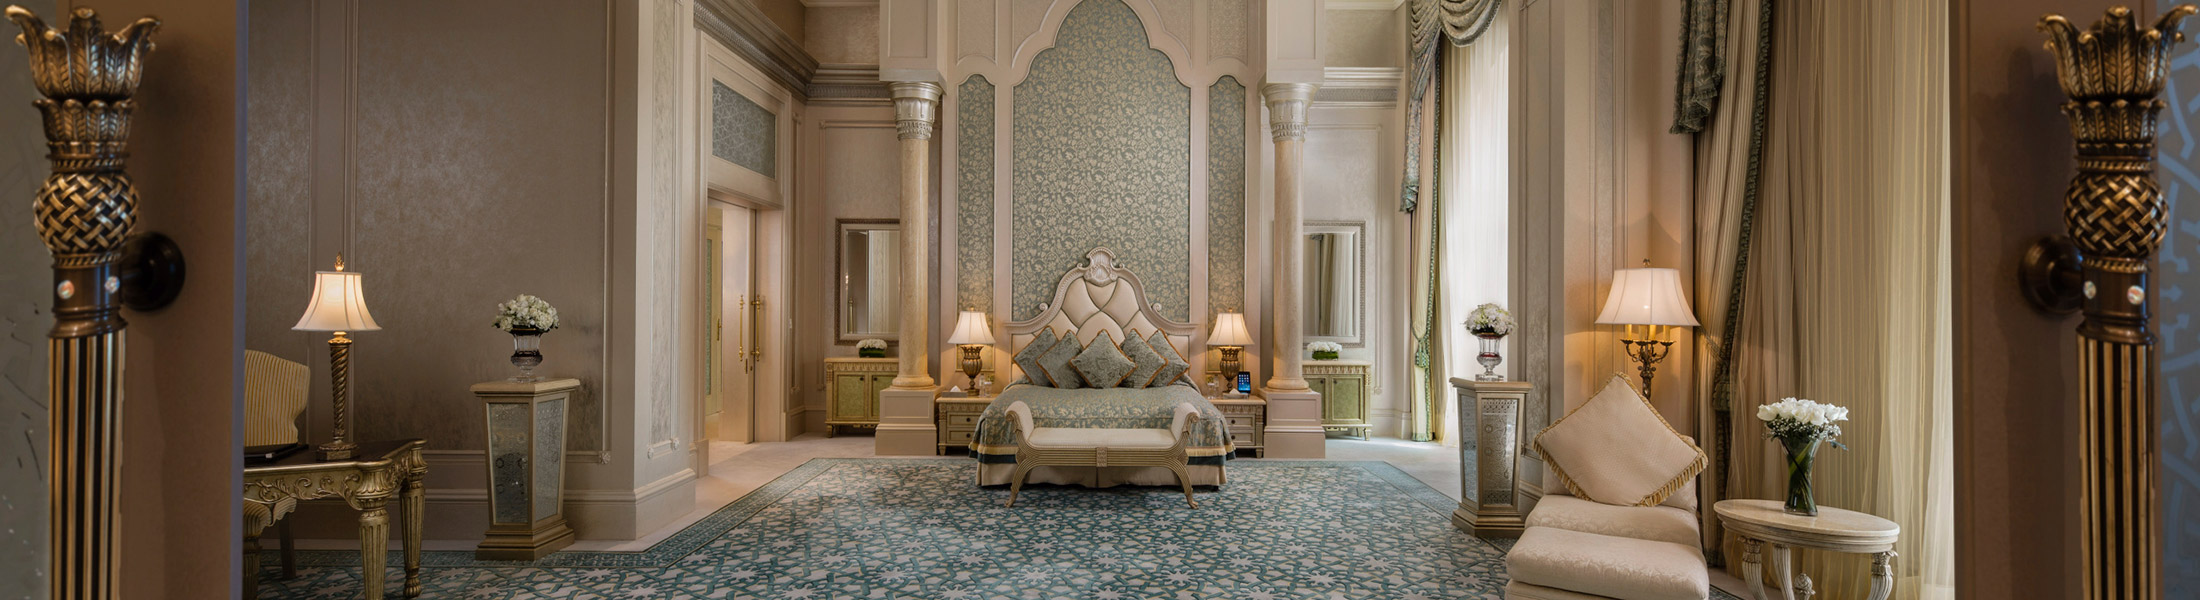 Bedroom of the Palace Suite at Emirates Palace